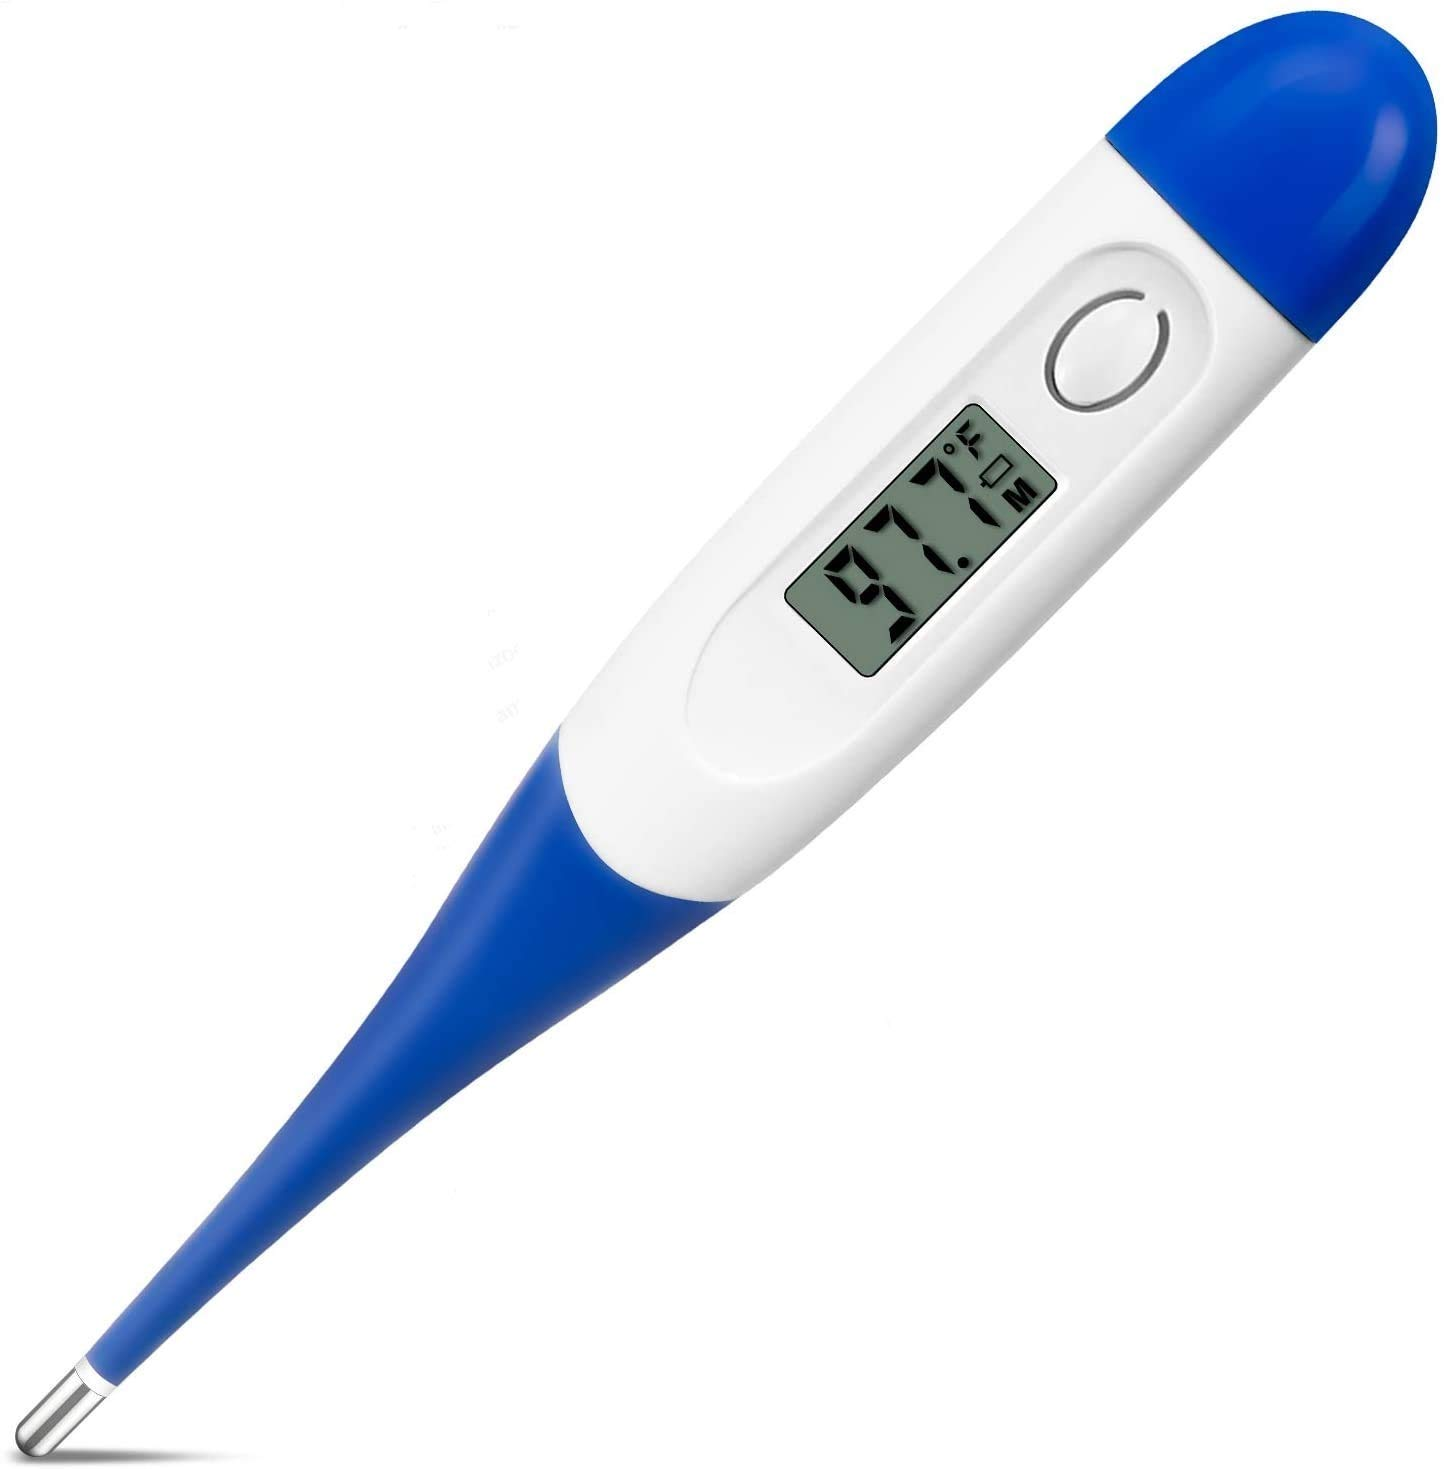 Digital Thermometer, Forehead, Rectal and Armpit Thermometer with 1 Sec Fast Reading, for Baby, Elders and Adults, Surface of Objects